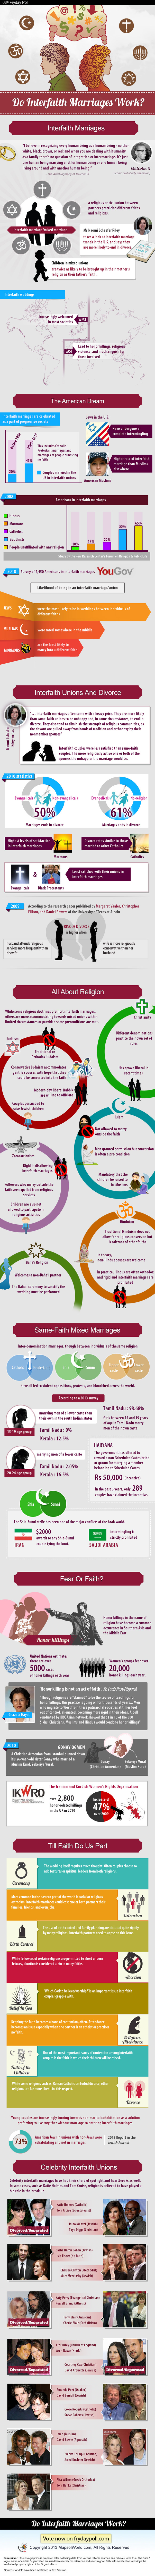 Interfaith Marriages Around the Globe